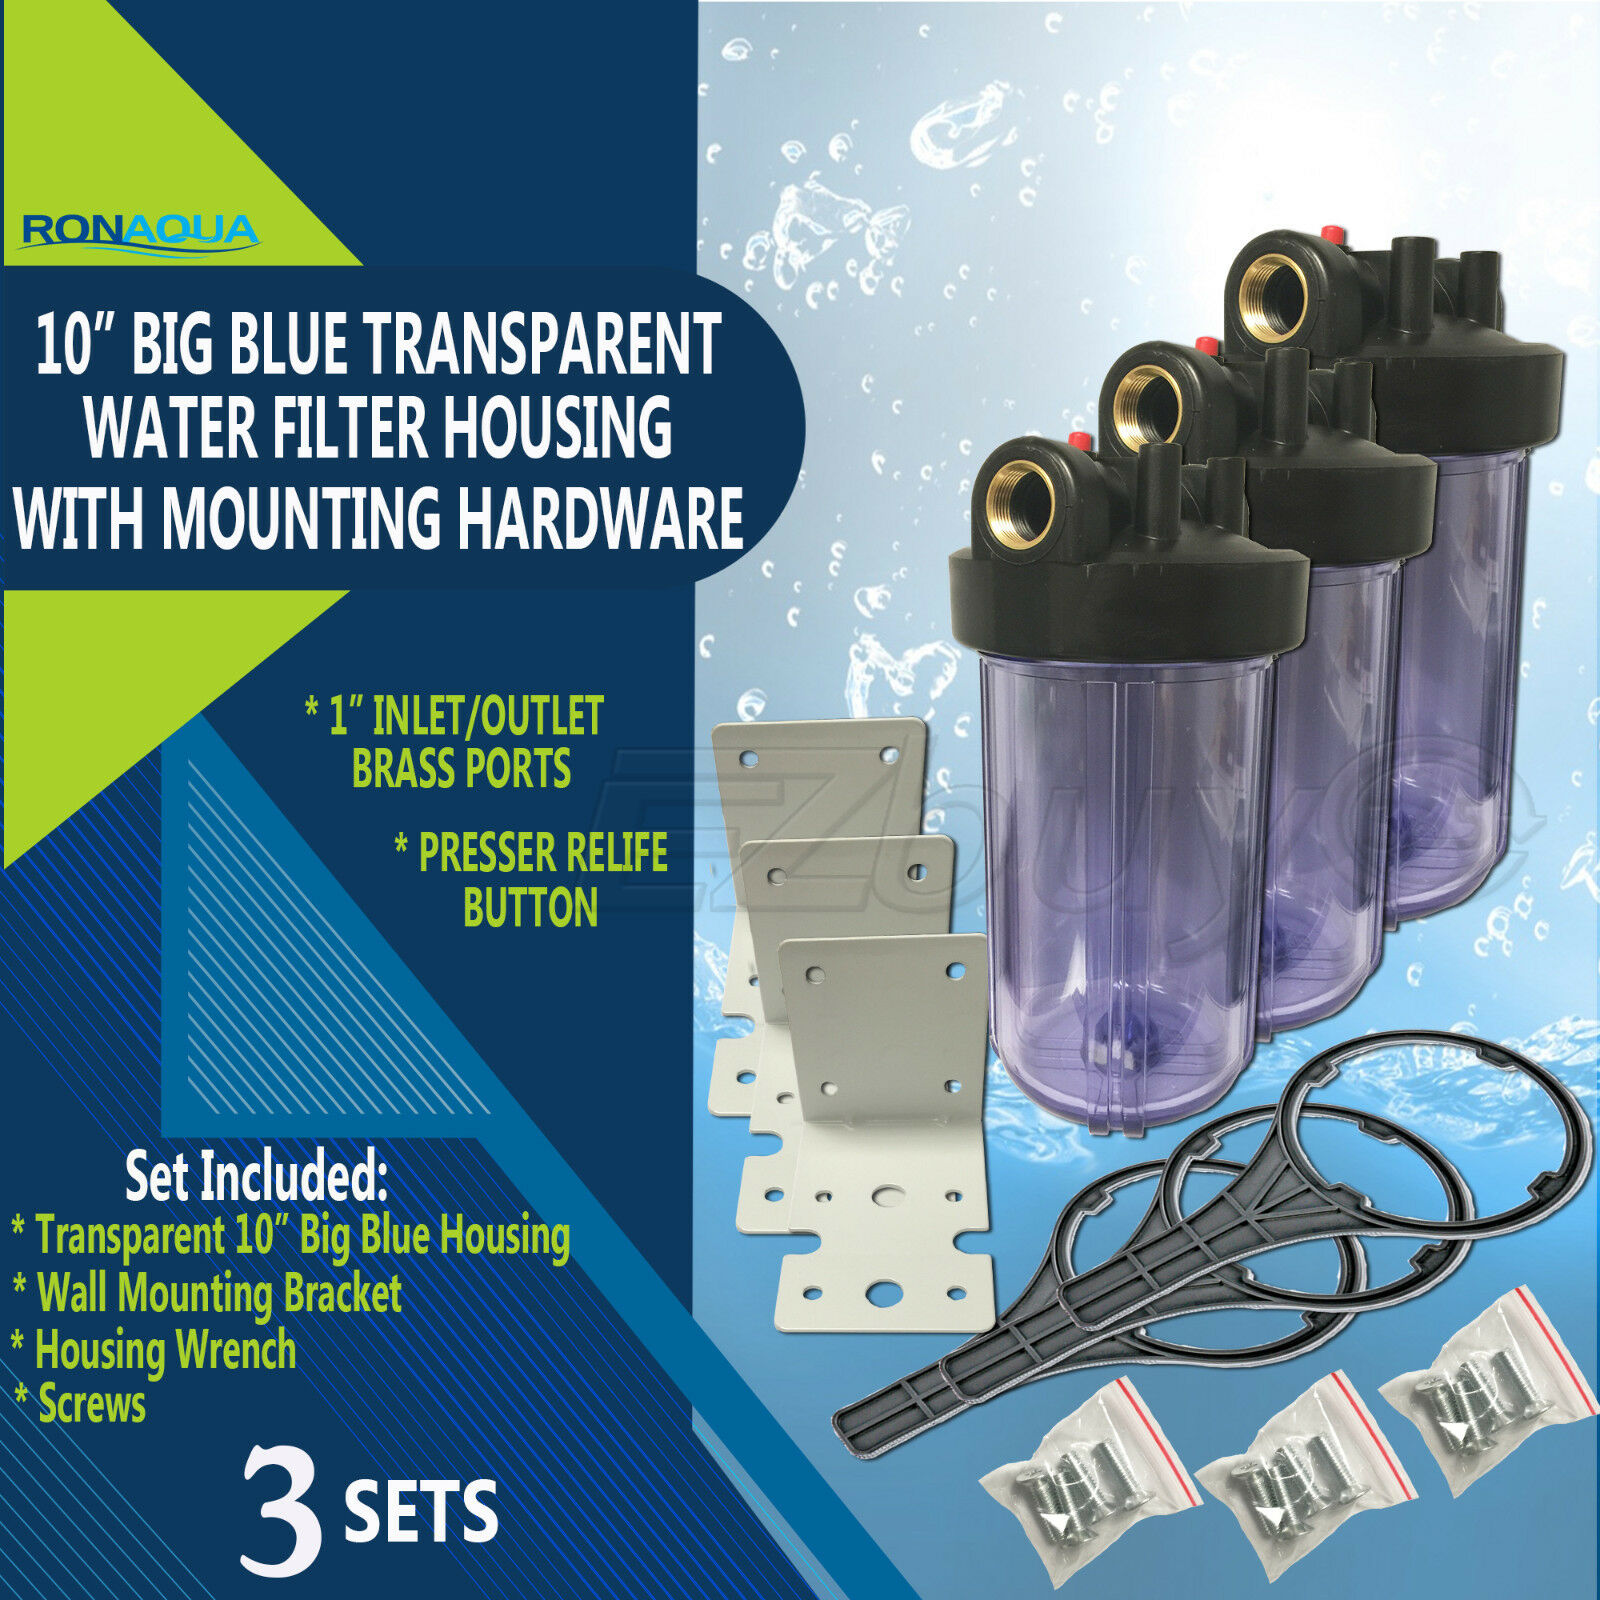 3 Transparent Big bluee Housings 10  for Whole House Water Filtration System.